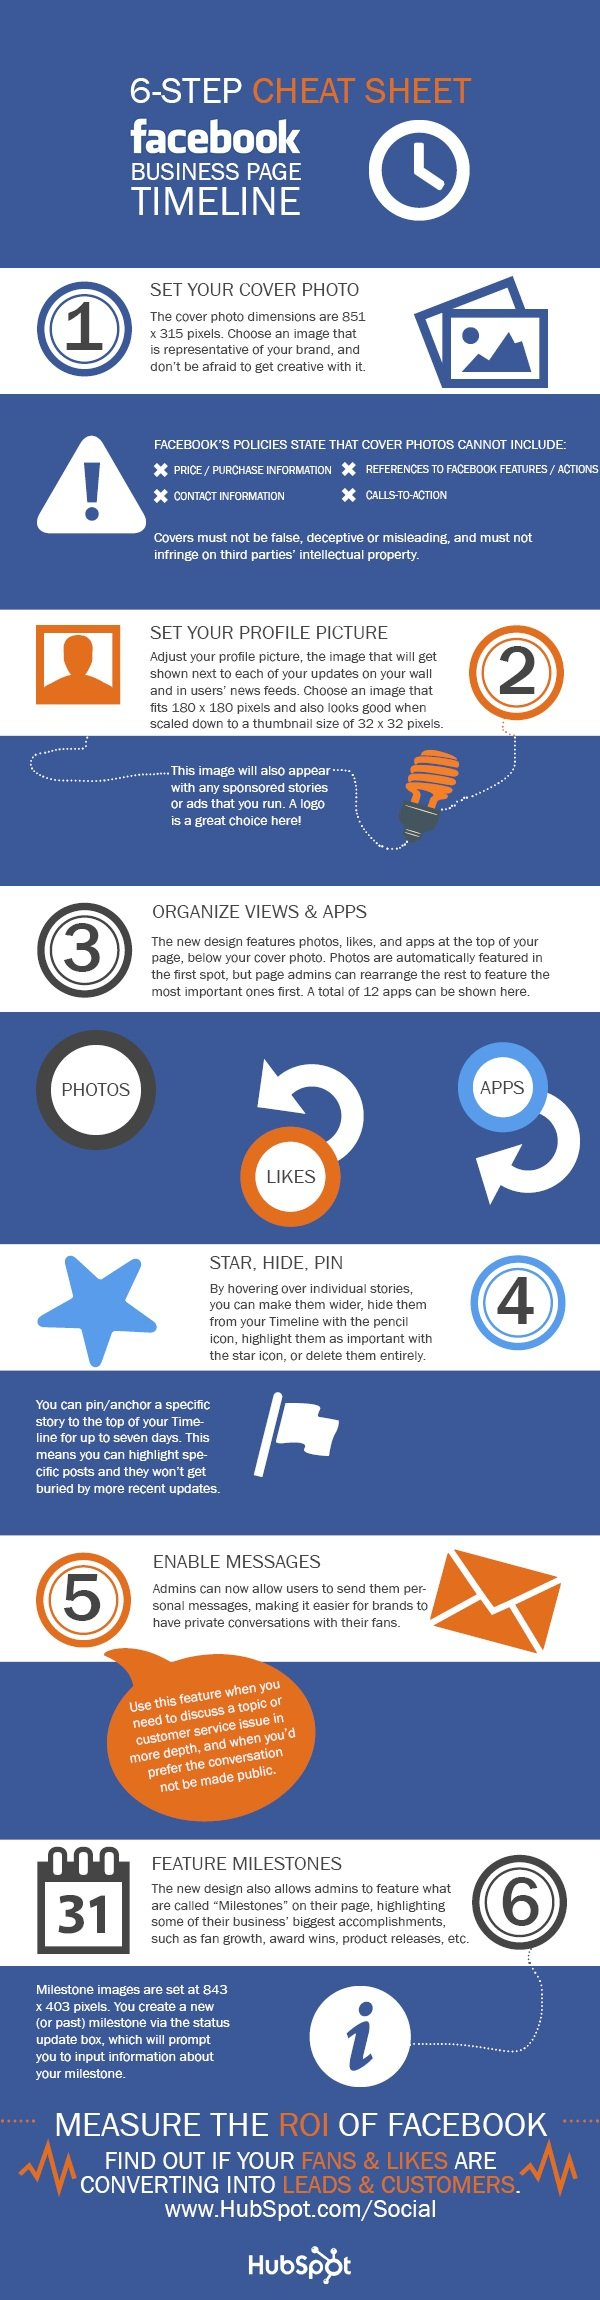 Facebook Business Page Timeline Cheat Sheet New Facebook Page Timeline Design Cheat Sheet